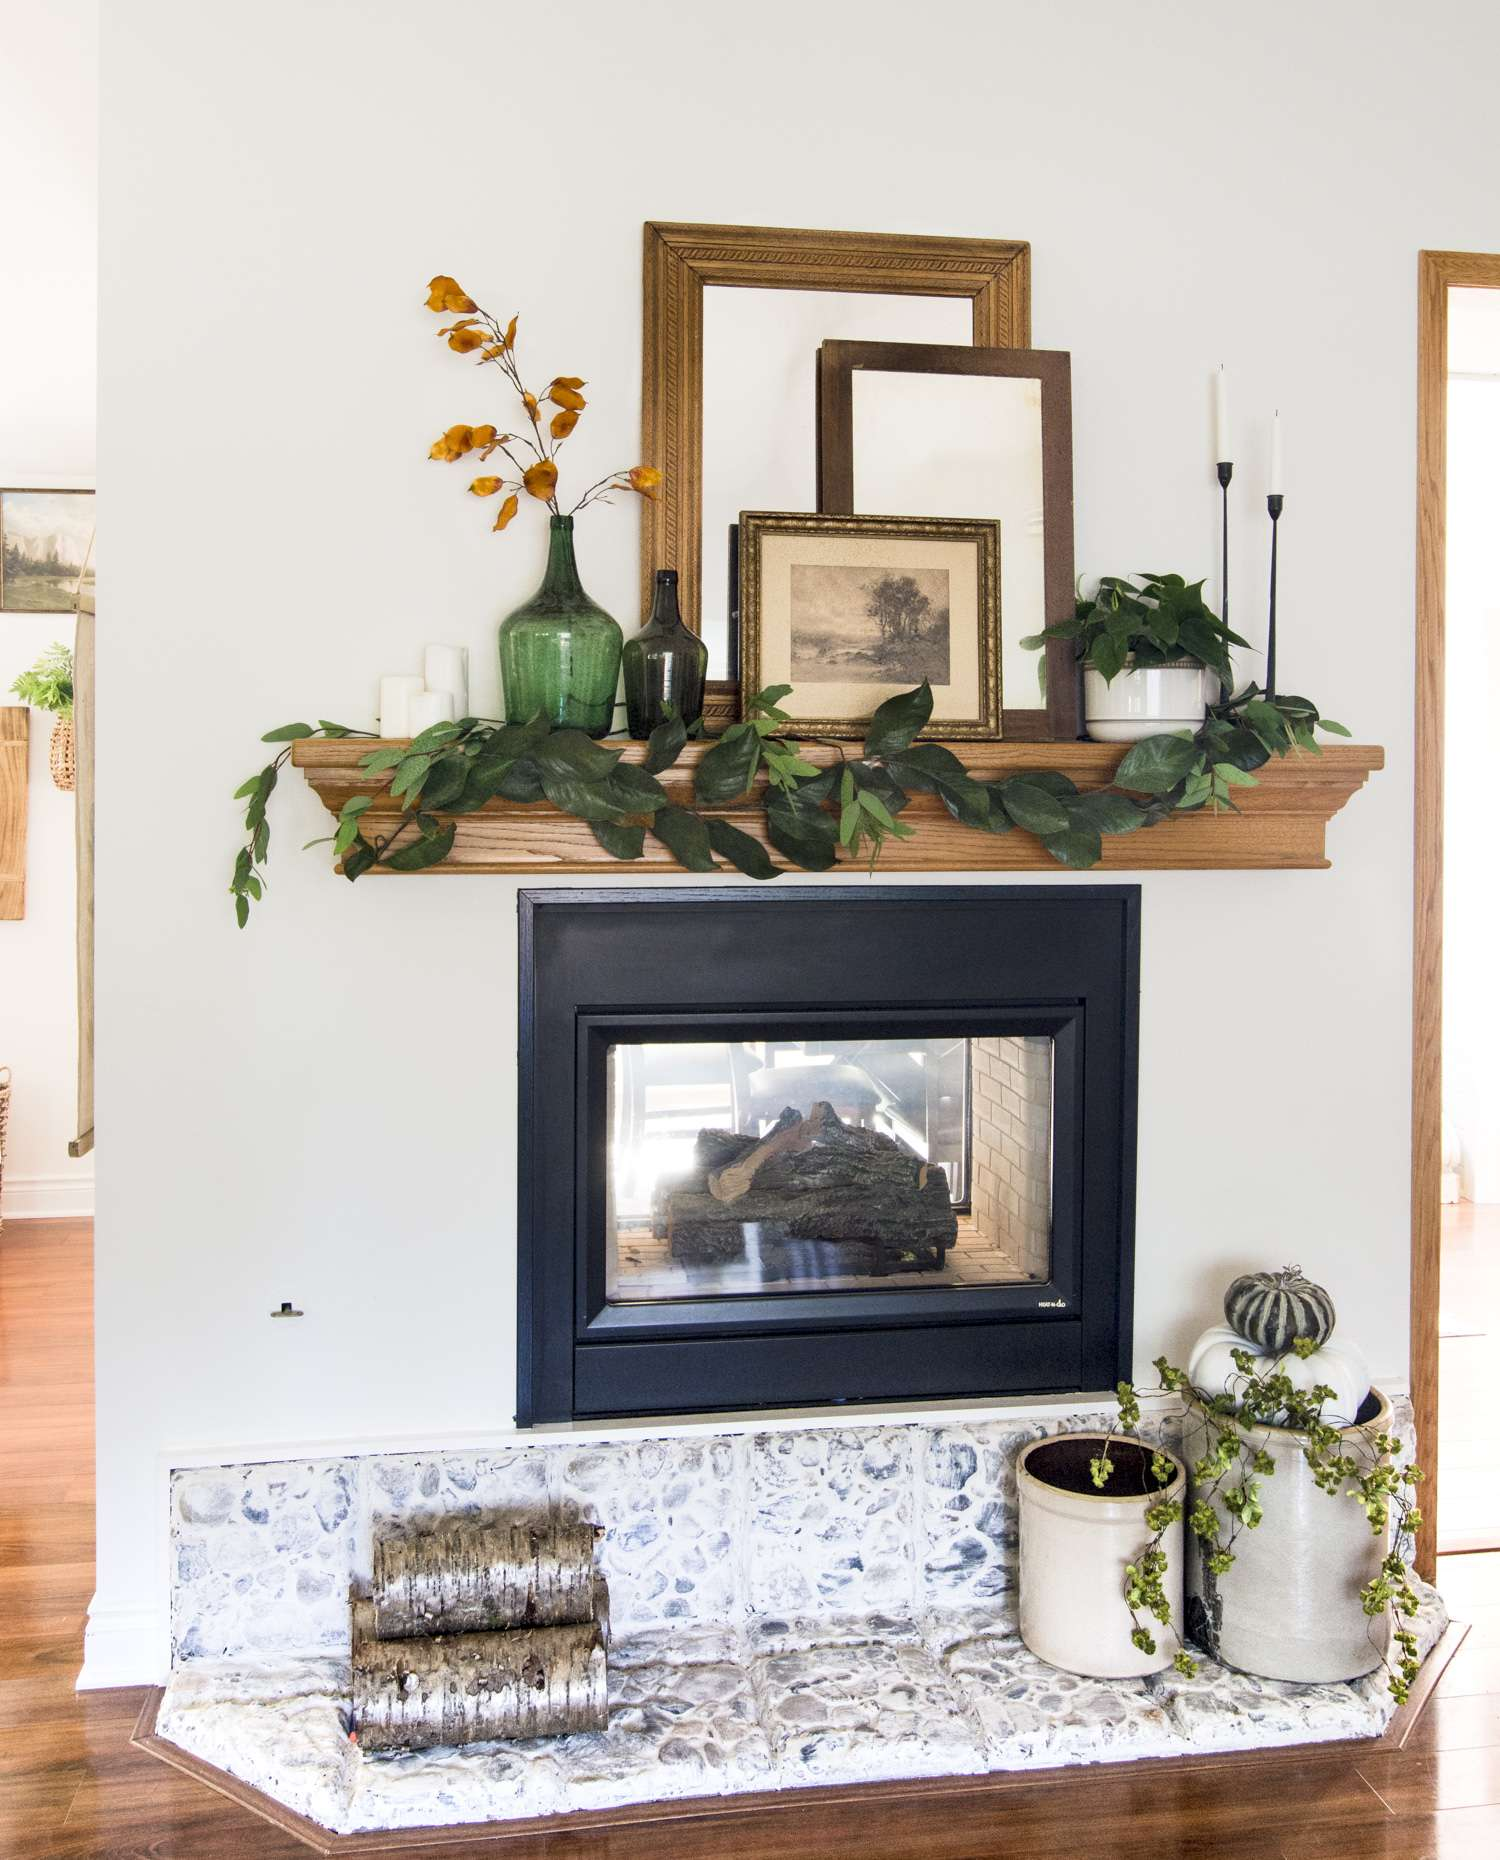 Modern farmhouse fireplace mantel.